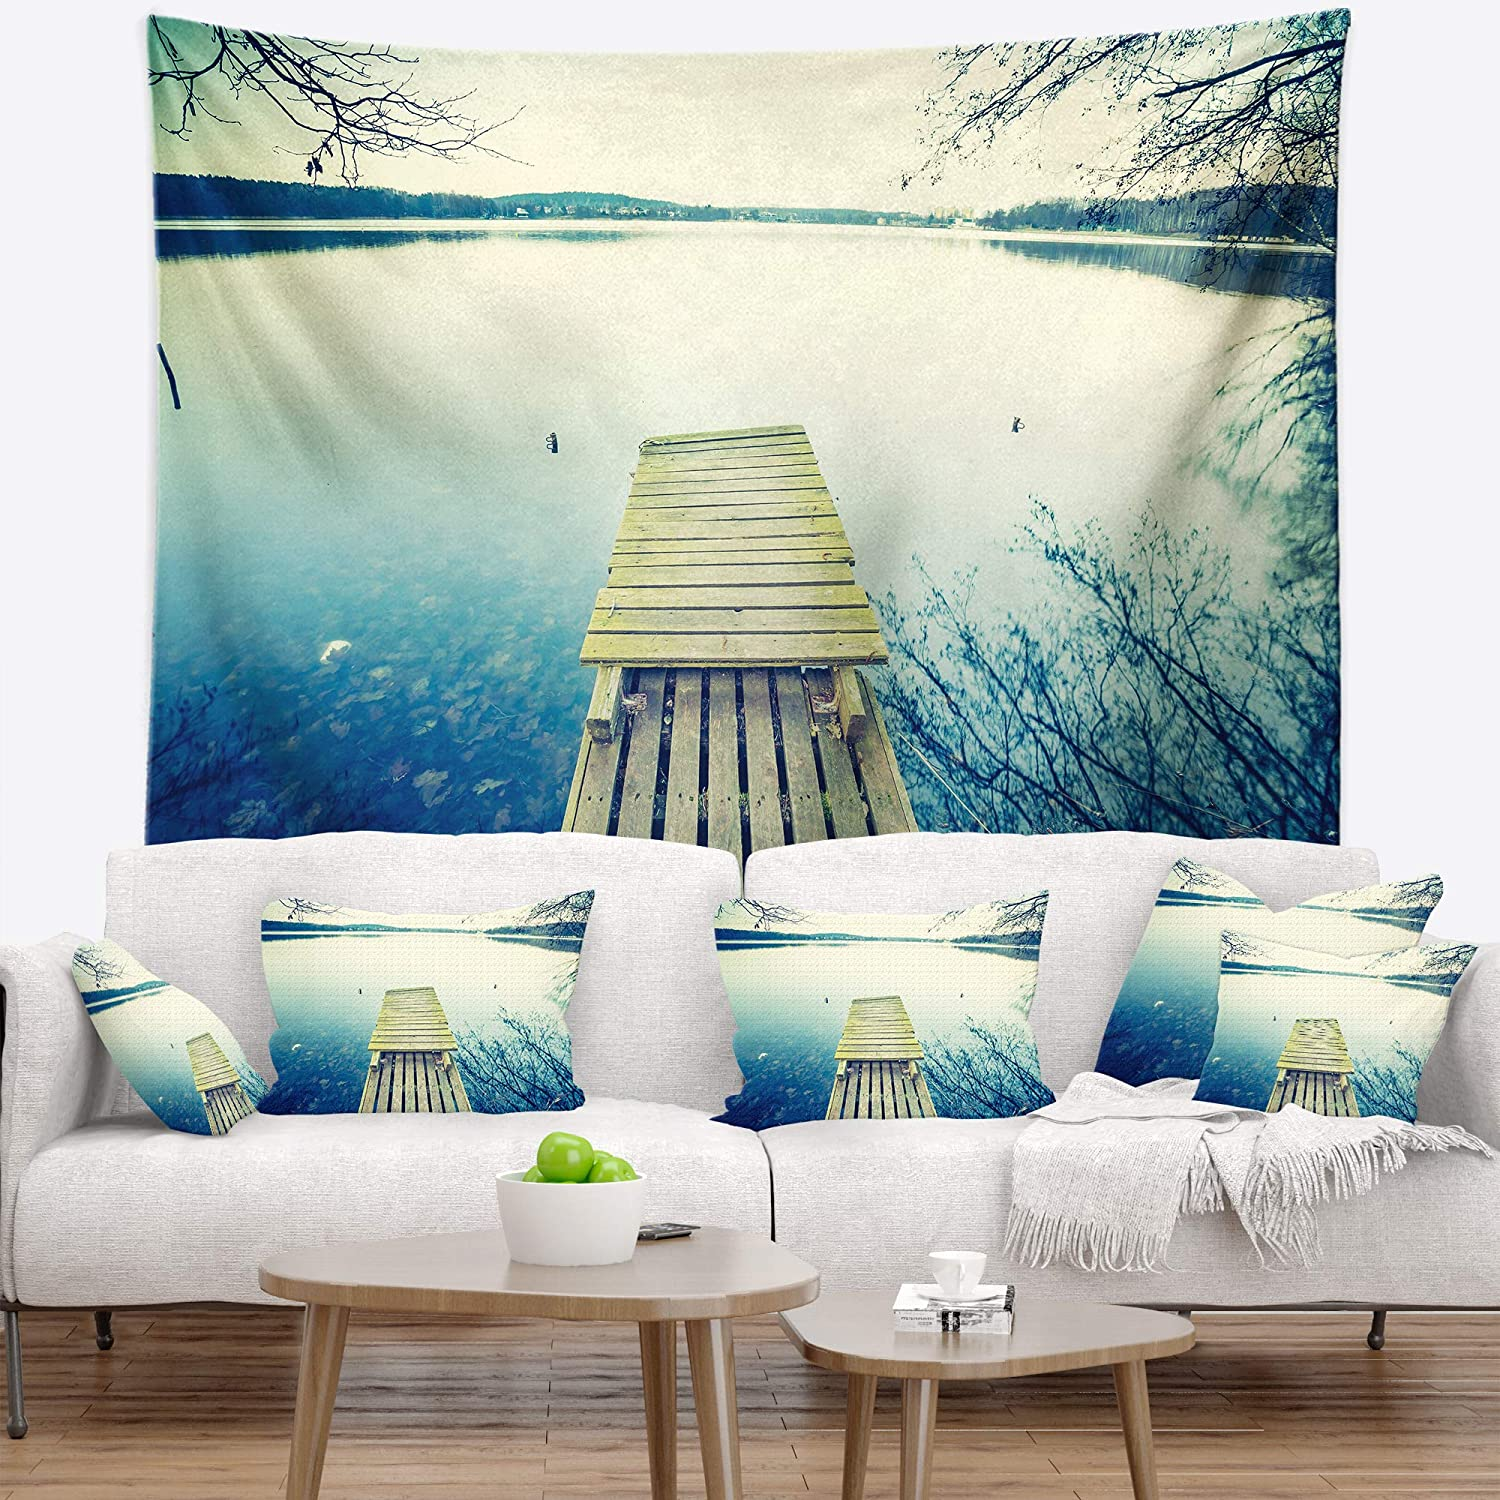 Medium: 39 in Created On Lightweight Polyester Fabric Designart TAP14870-39-32 Sunset Over Tranquil Lake Bridge Blanket D/écor Art for Home and Office Wall Tapestry x 32 in